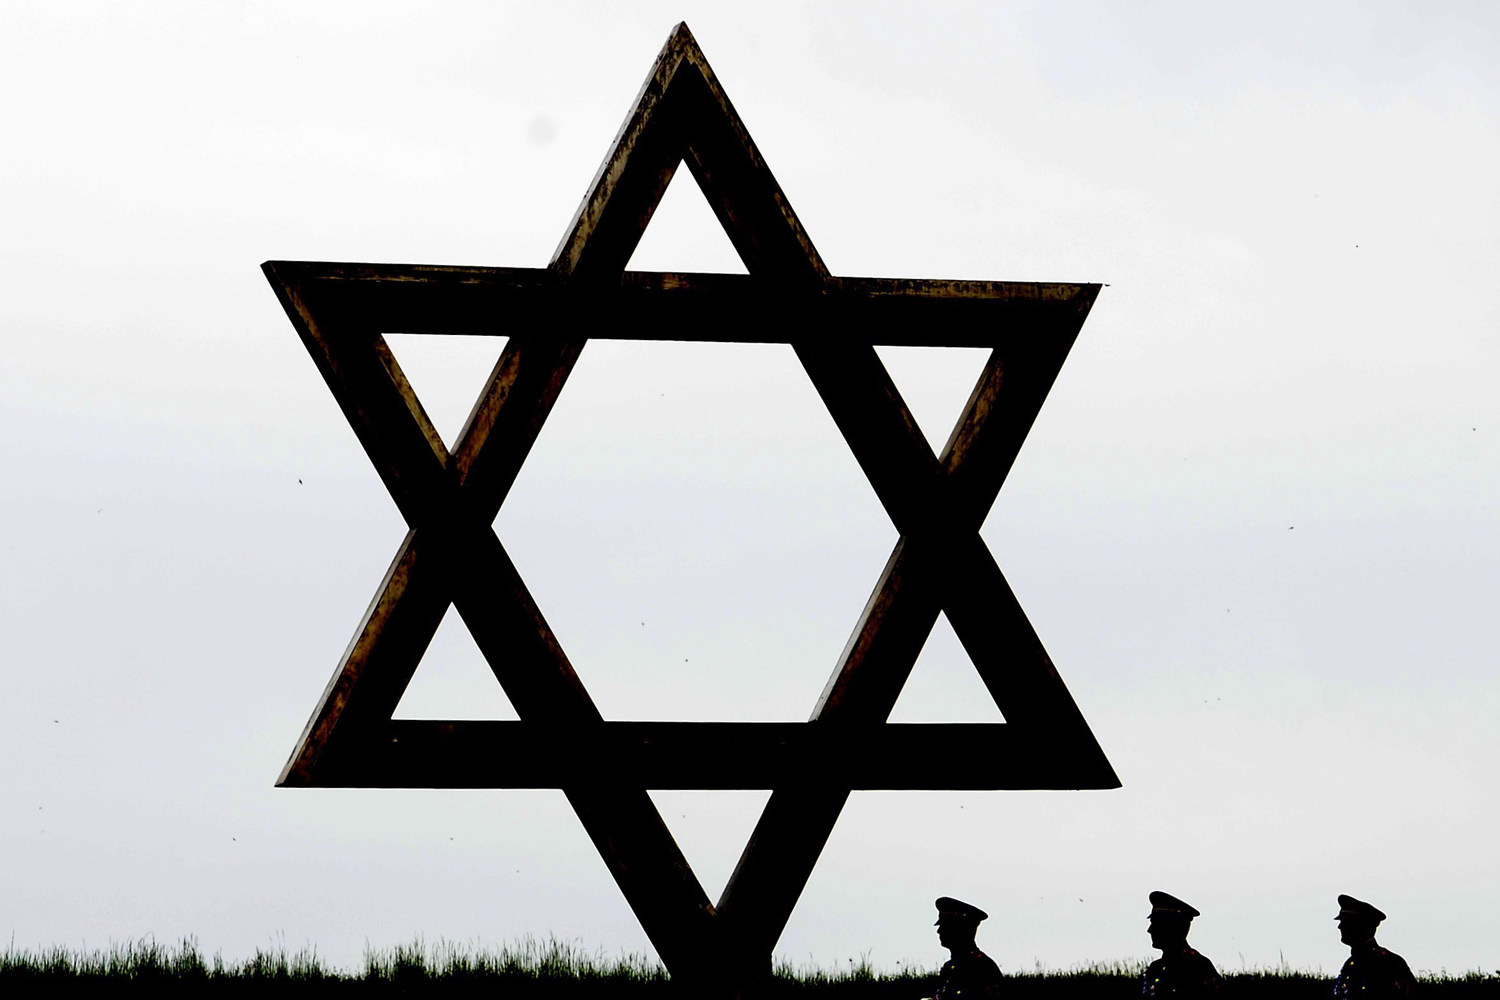 May 6, 2014. Soldiers walk behind a Star of David during the visit of German President Joachim Gauck (unseen) to the former Nazi concentration camp  Terezin (Theresiendstadt), Czech Republic.